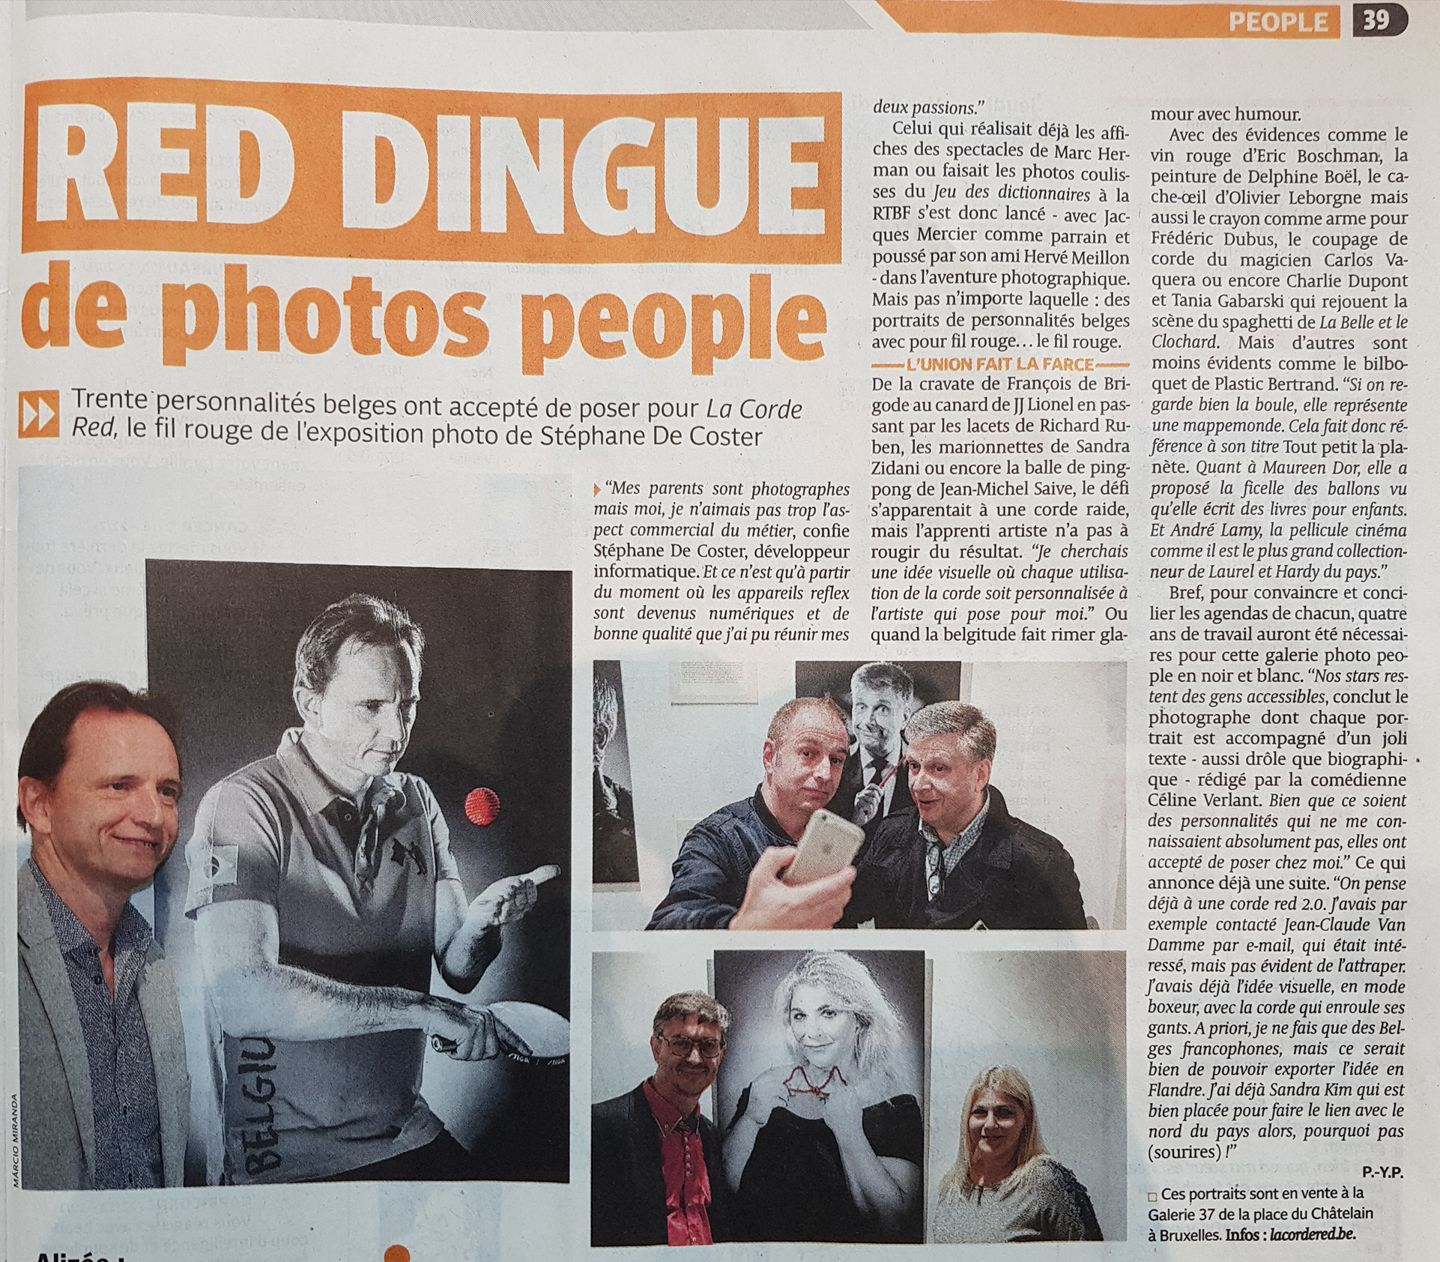 RED DINGUE de photos people